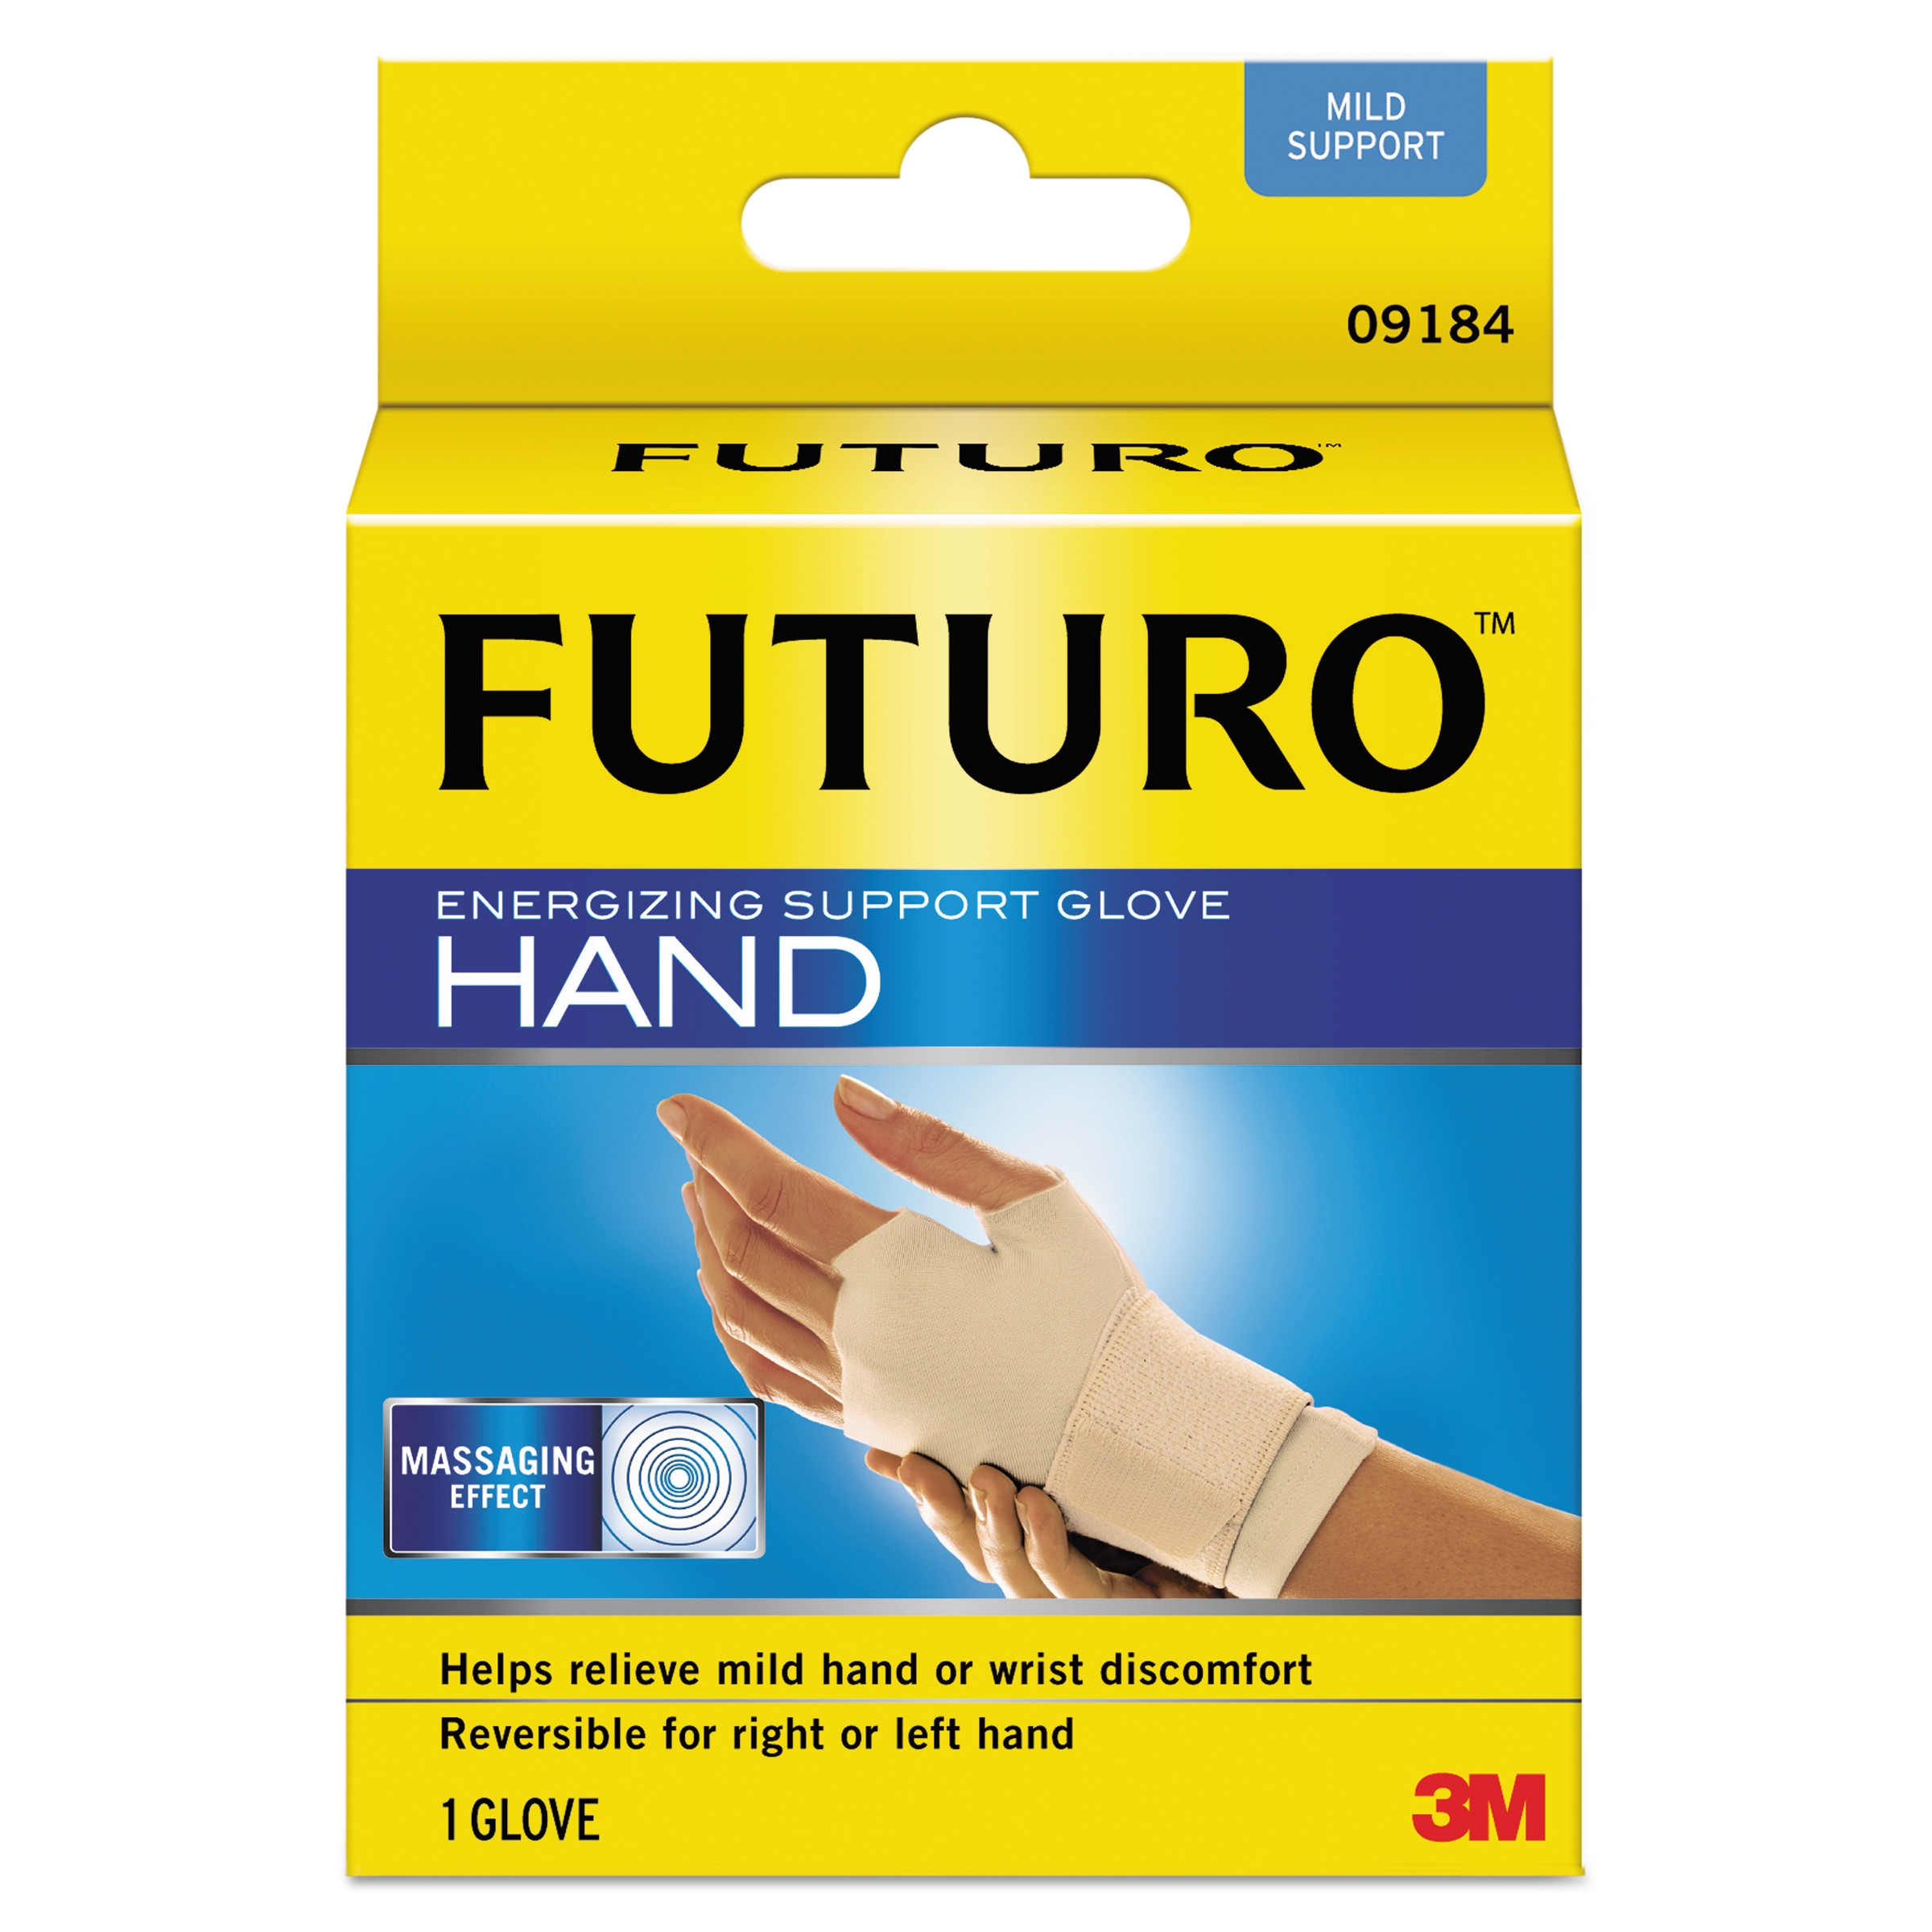 "FUTURO Energizing Support Glove, Medium, Palm Size 7 1/2"" - 8 1/2"", Tan"